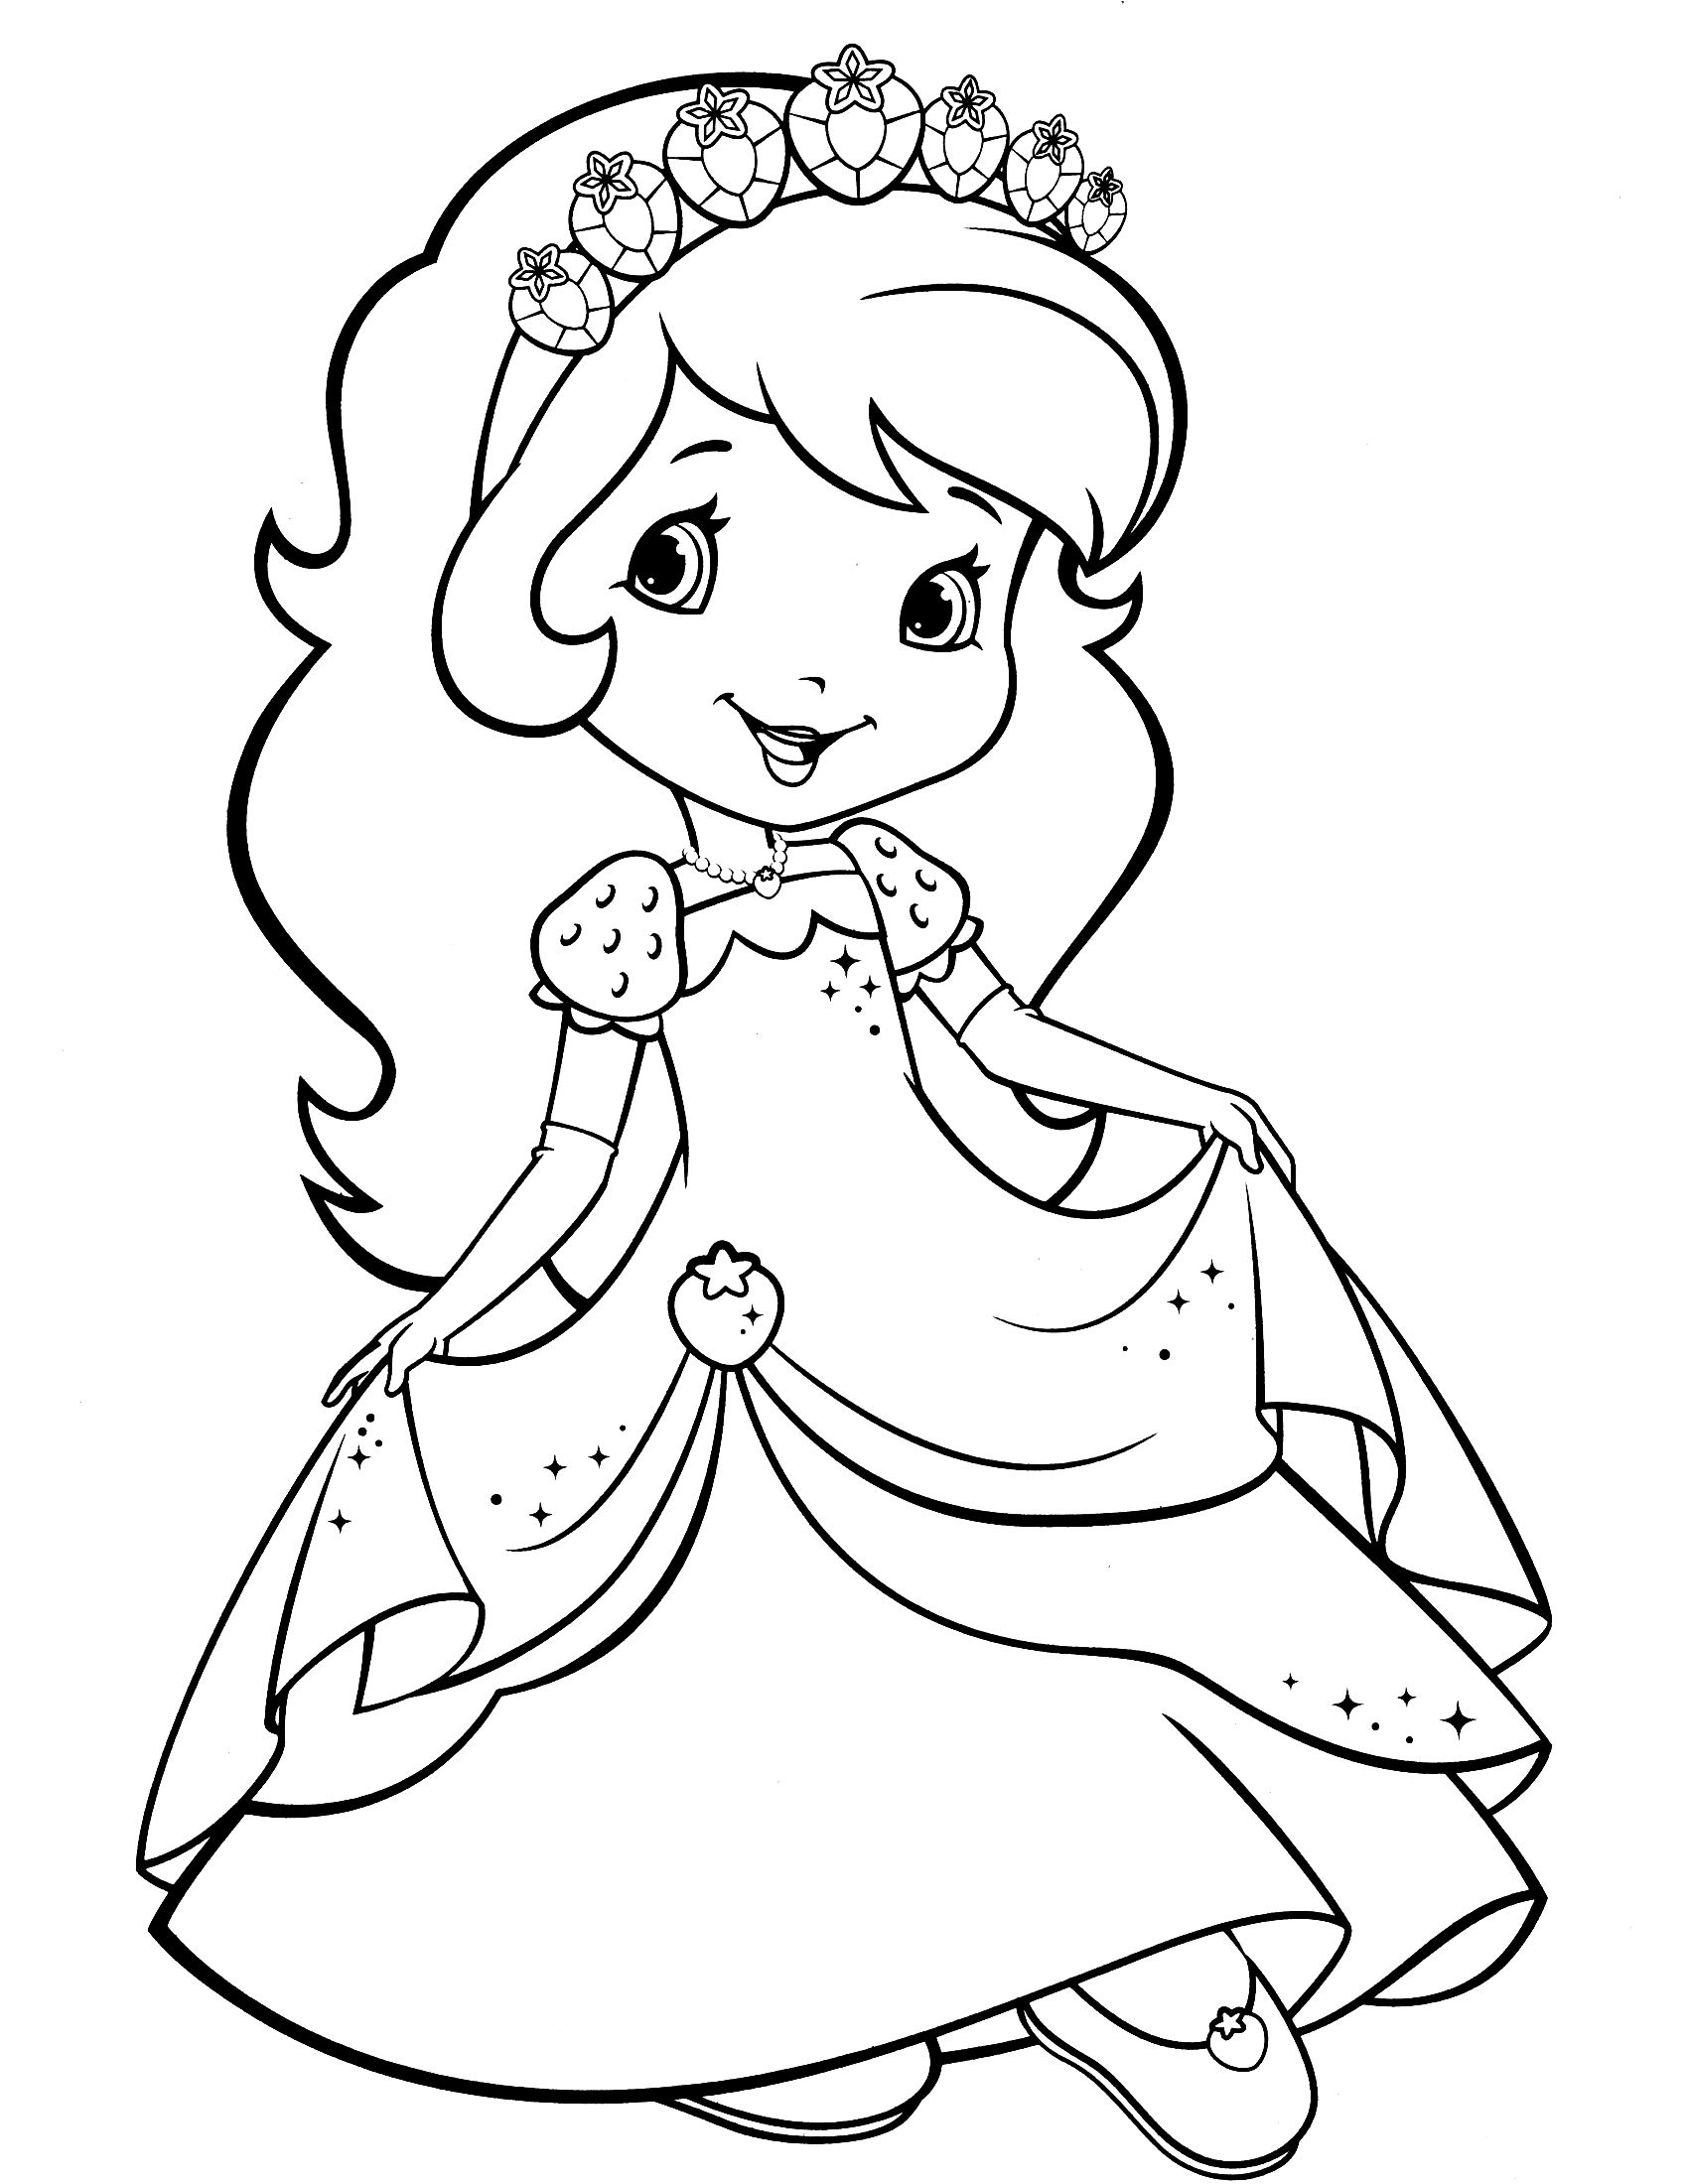 strawberry shortcake coloring page | fresitas | Pinterest | Coloring ...